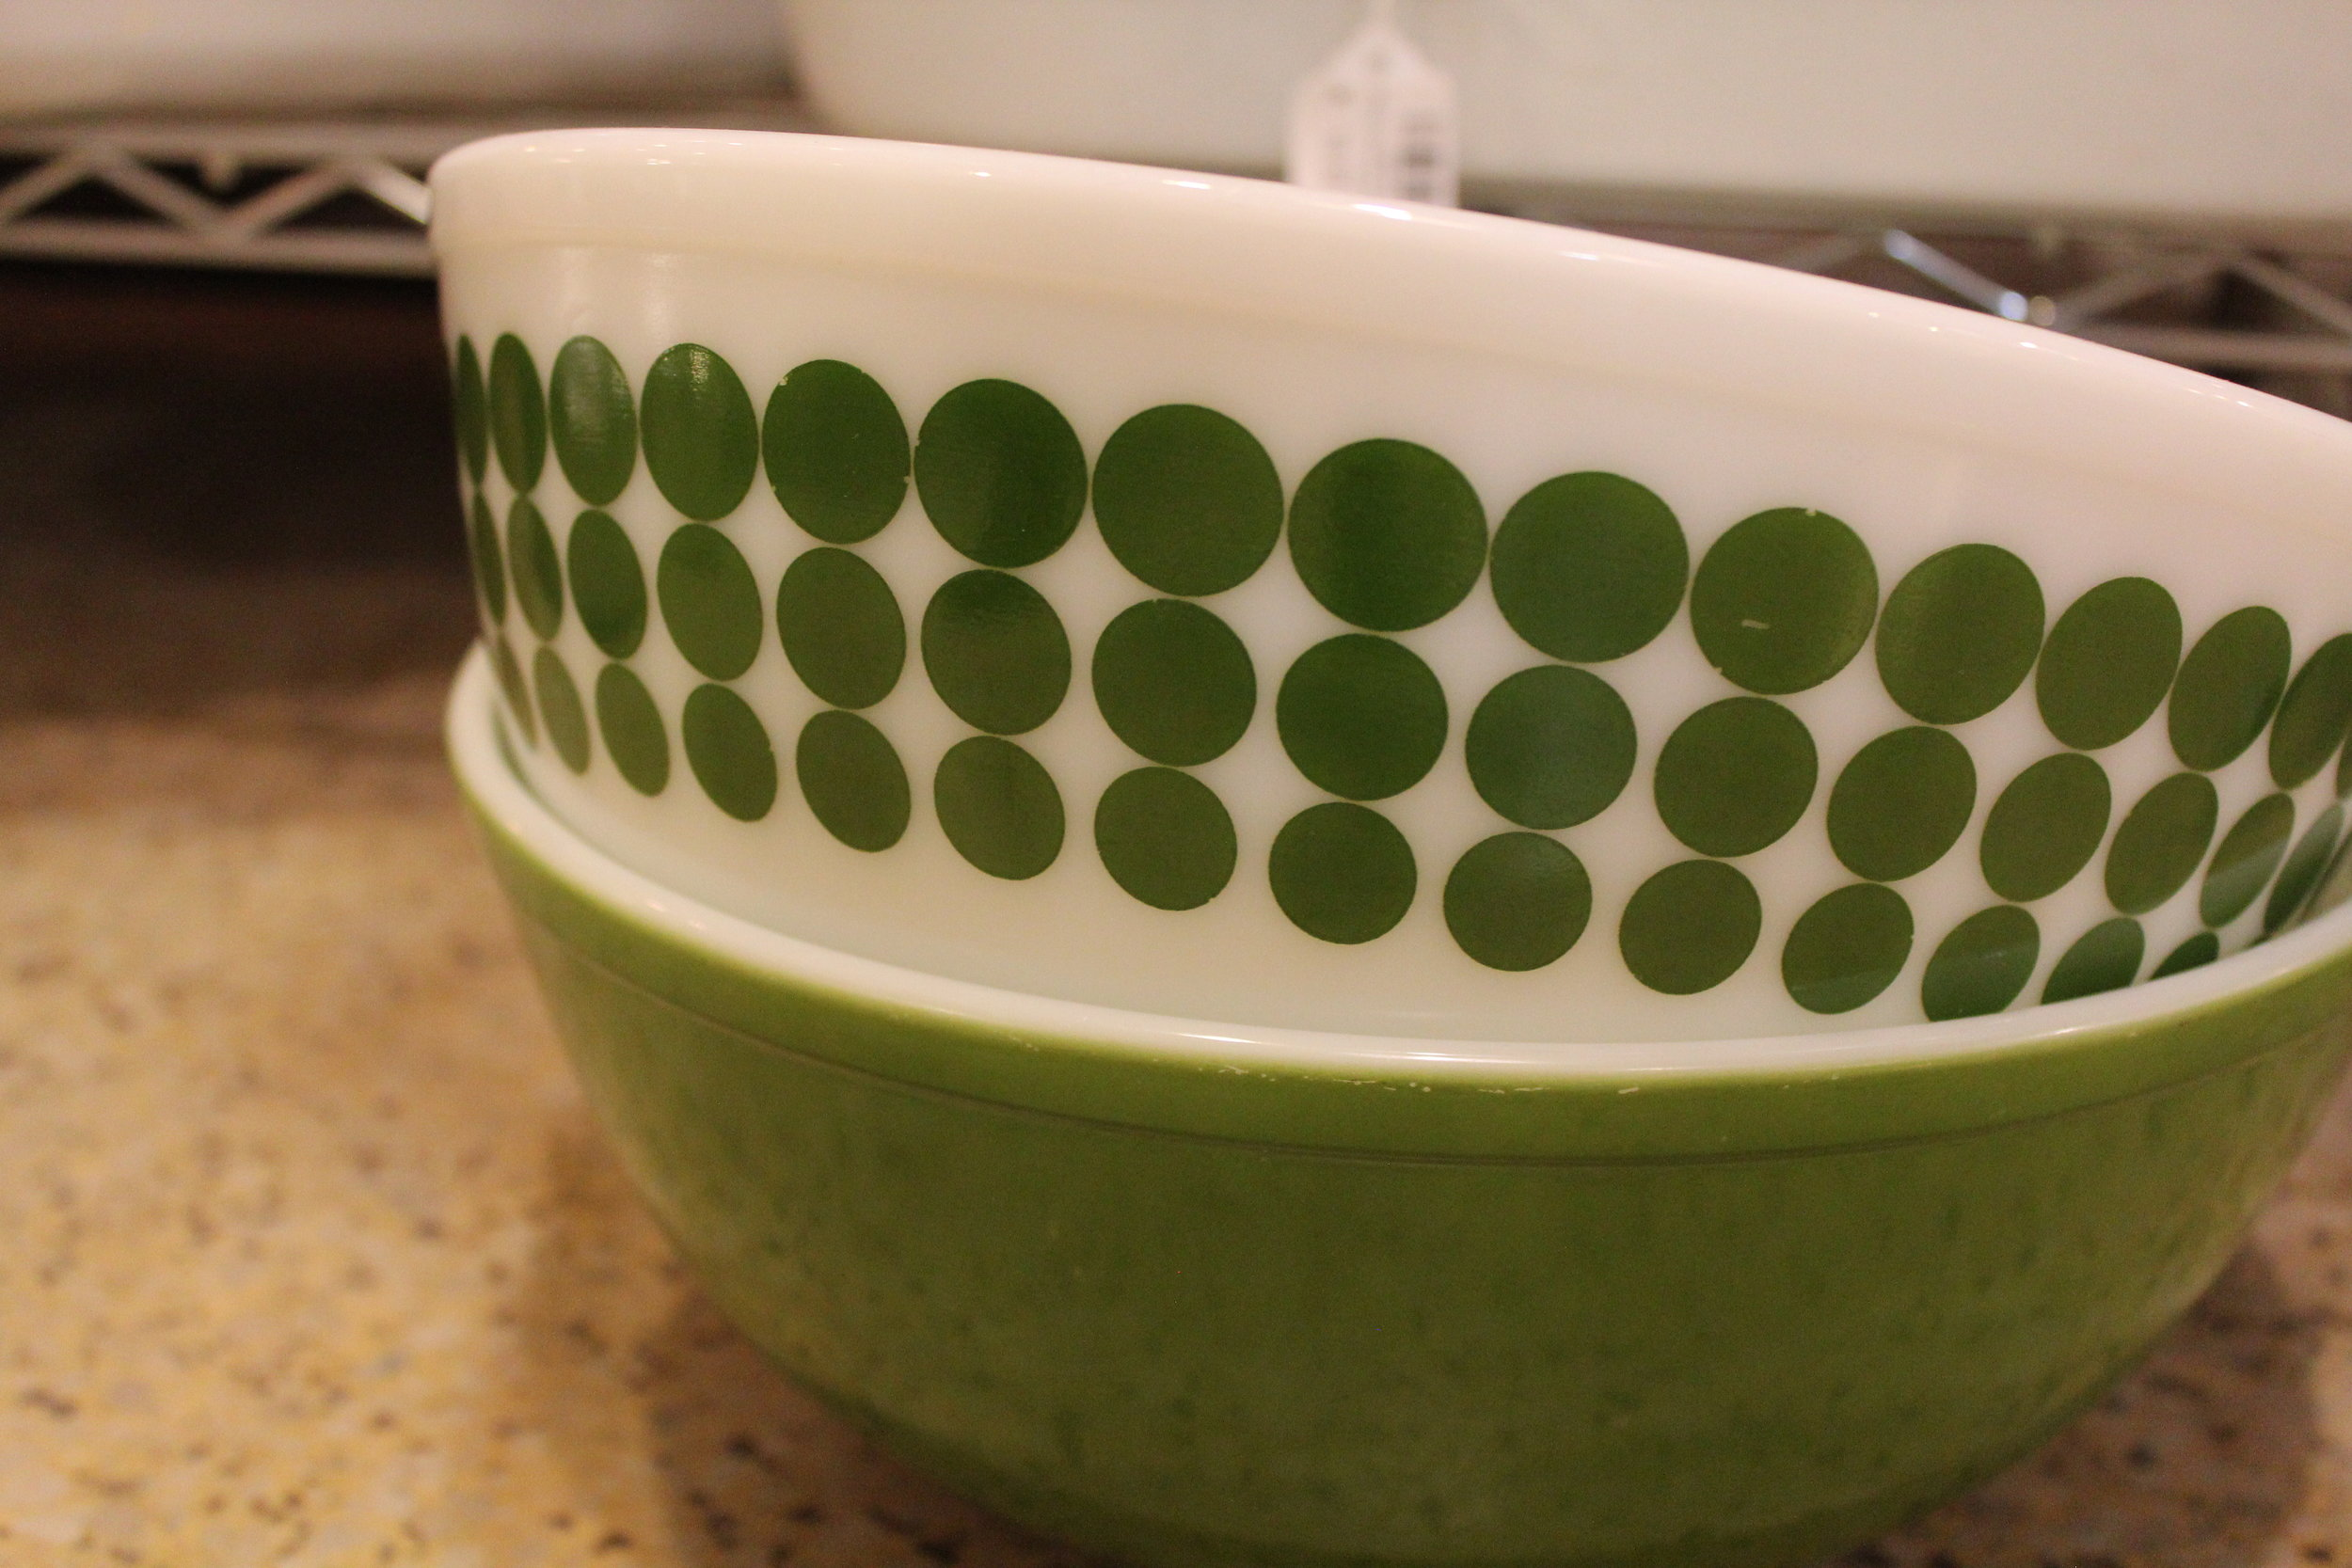 mid-century modern green and white bowls